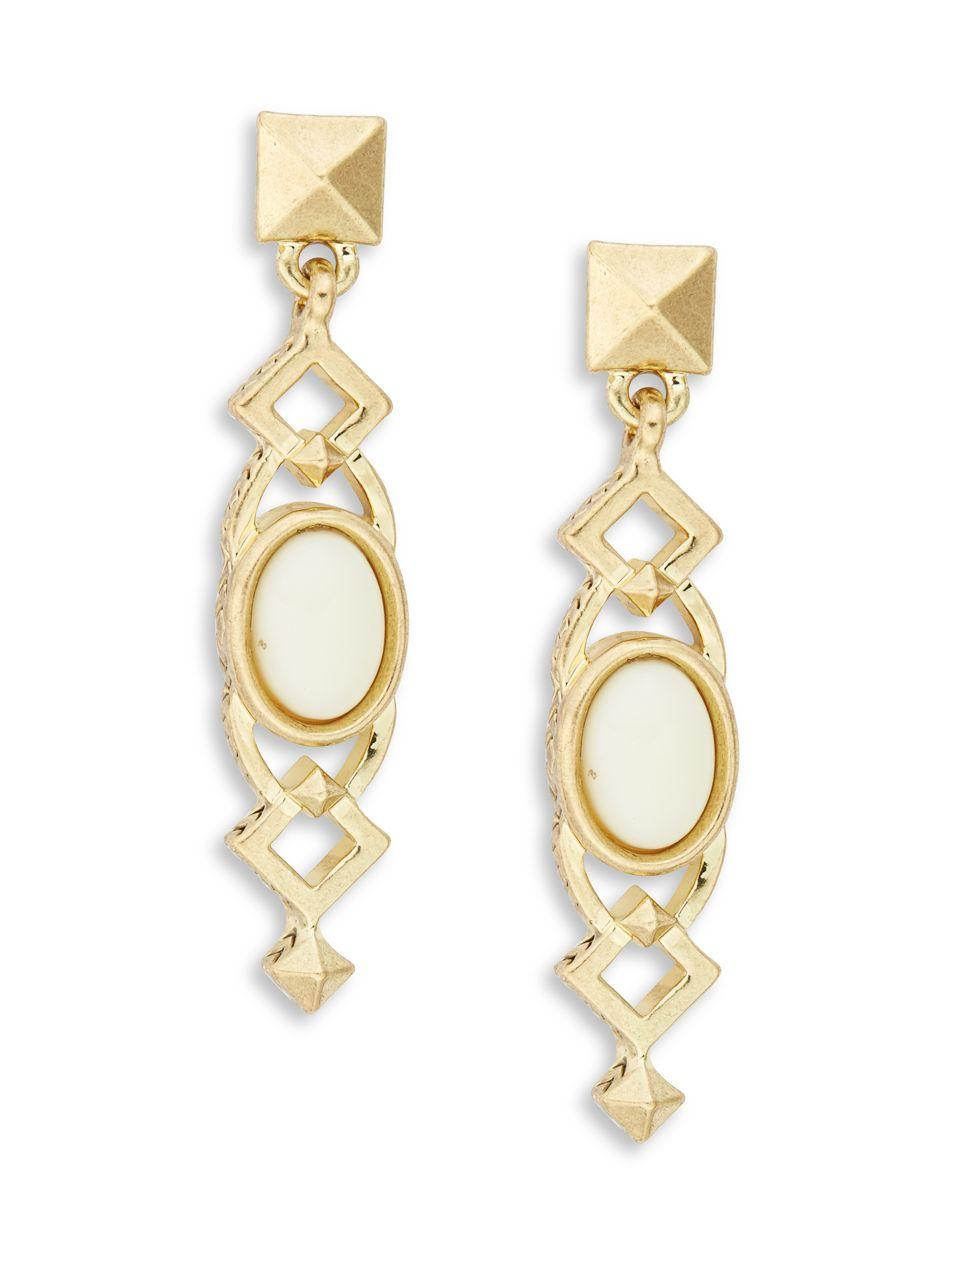 House Of Harlow House of Harlow Lady Of Grace Drop Earring in Metallic Gold x6aOqC686